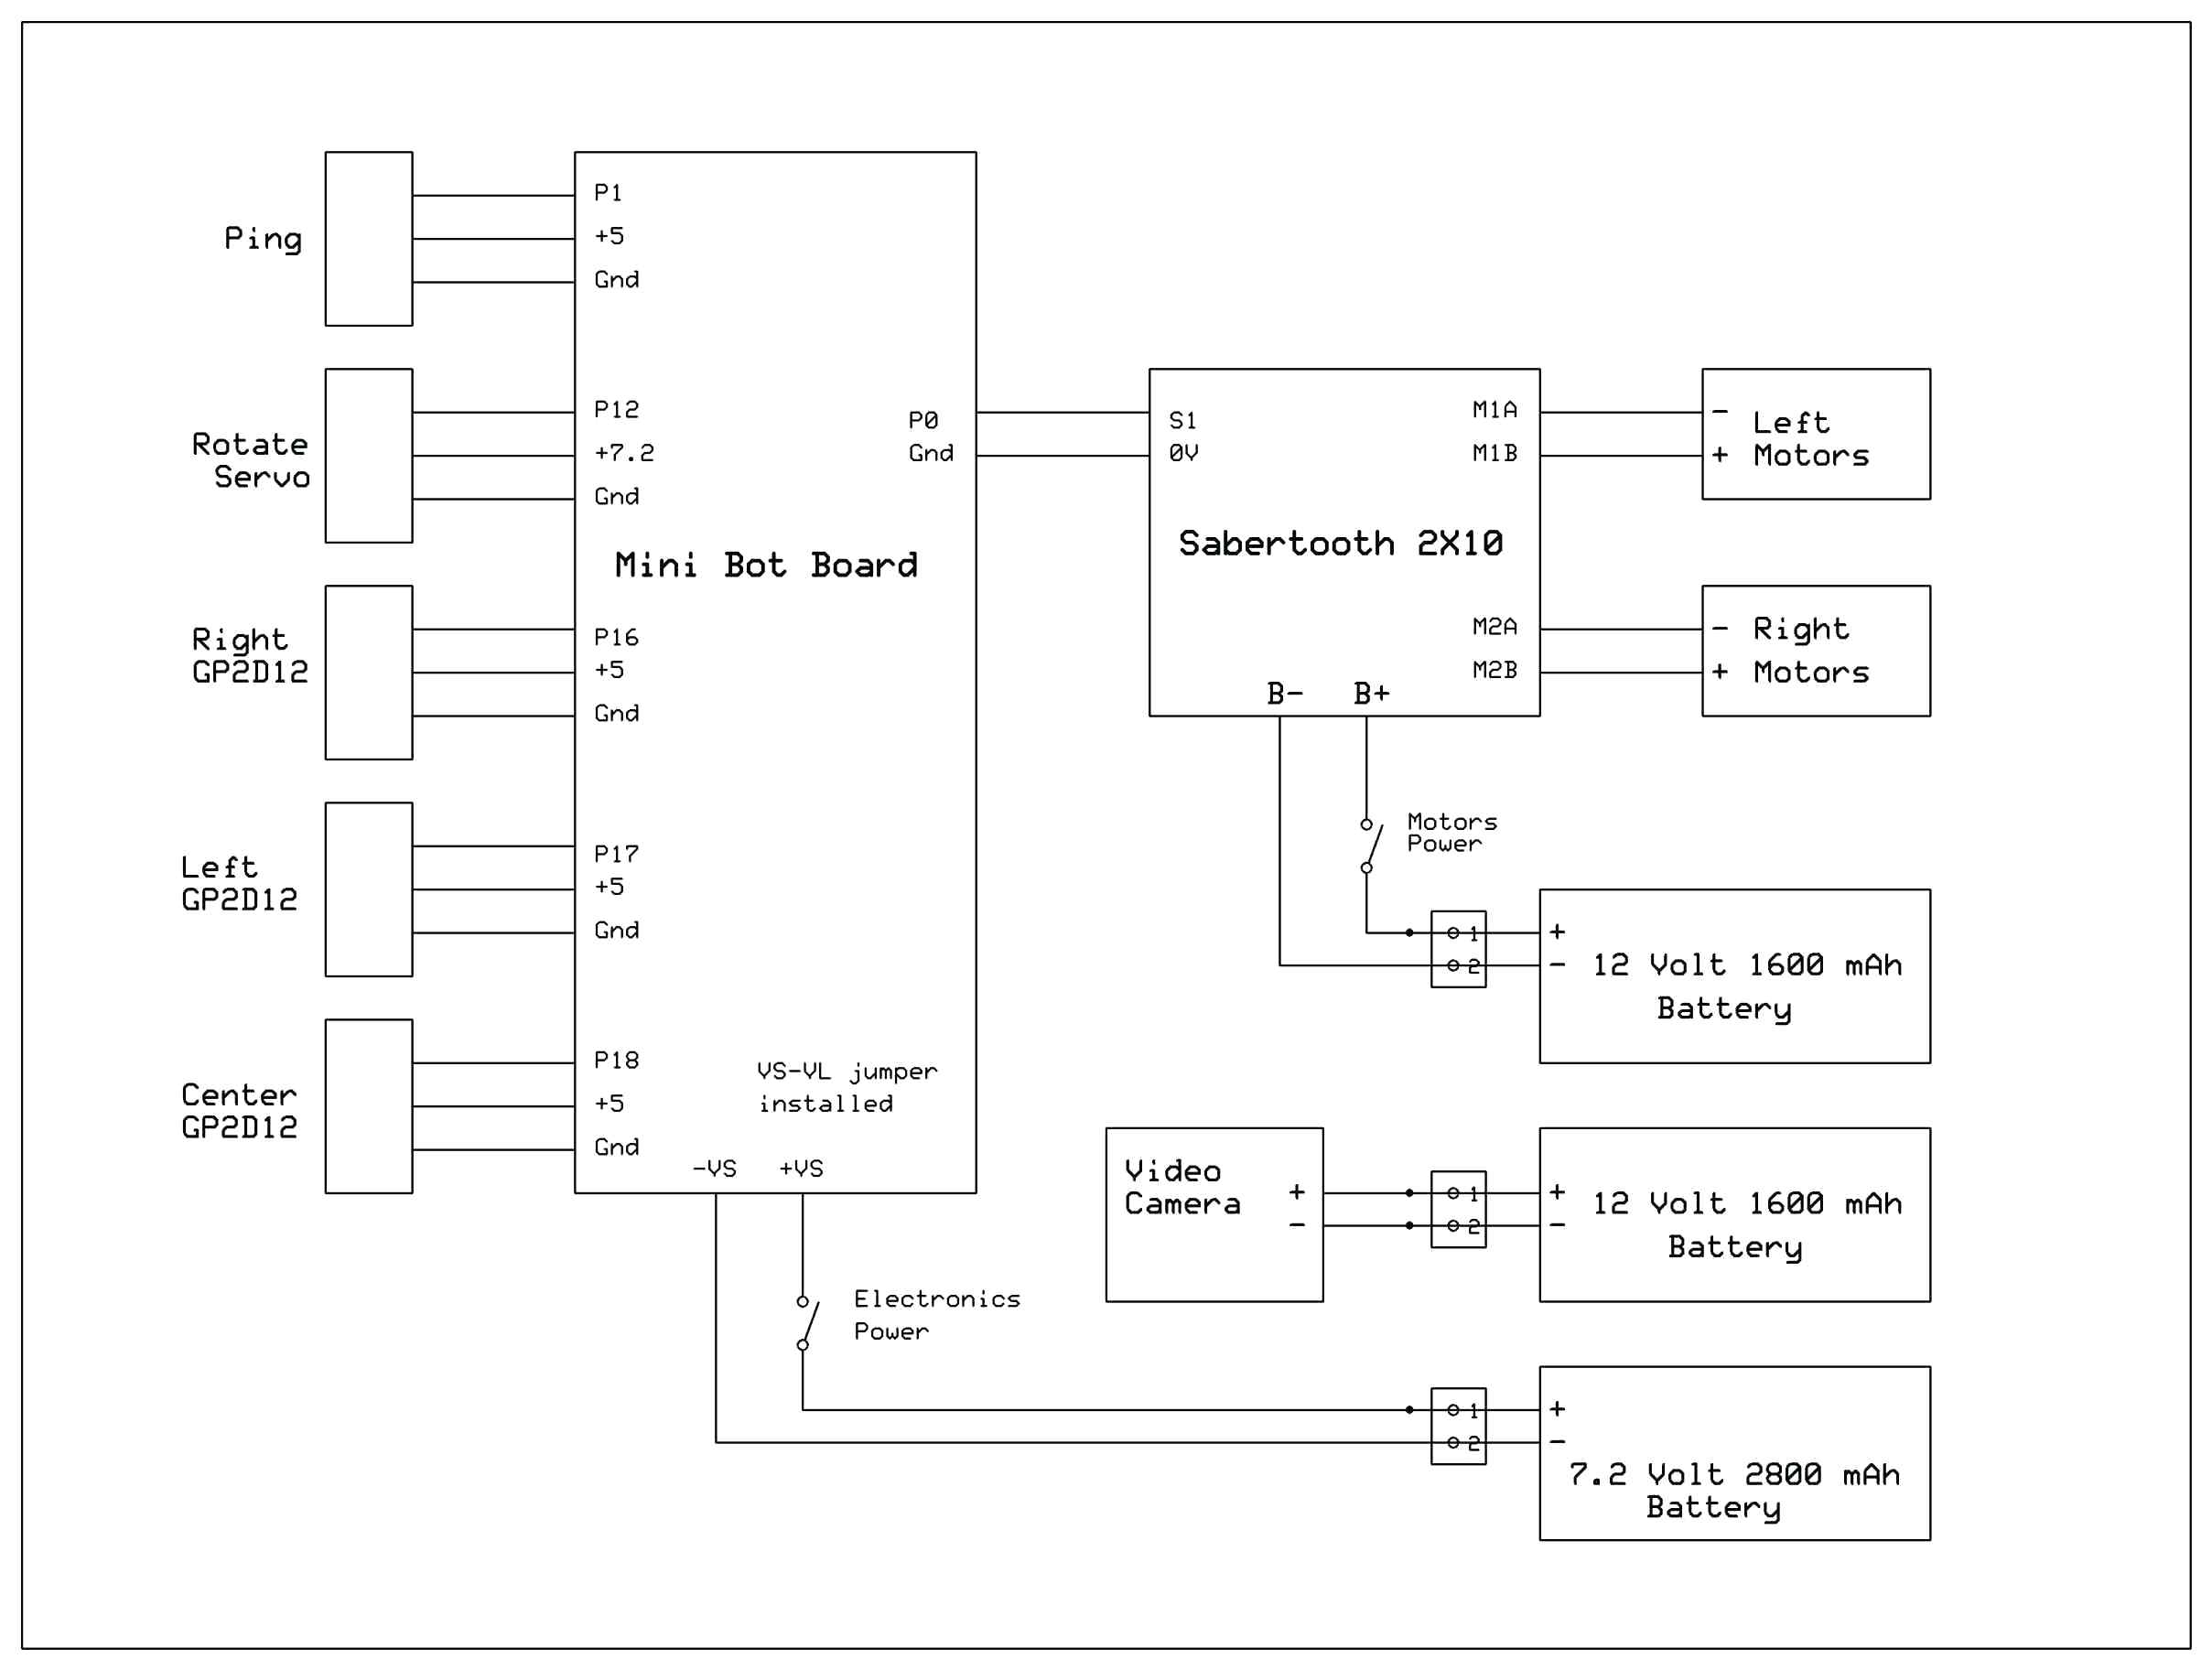 Hood Fire Suppression Wiring Diagram   Wiring Library - Ansul System Wiring Diagram